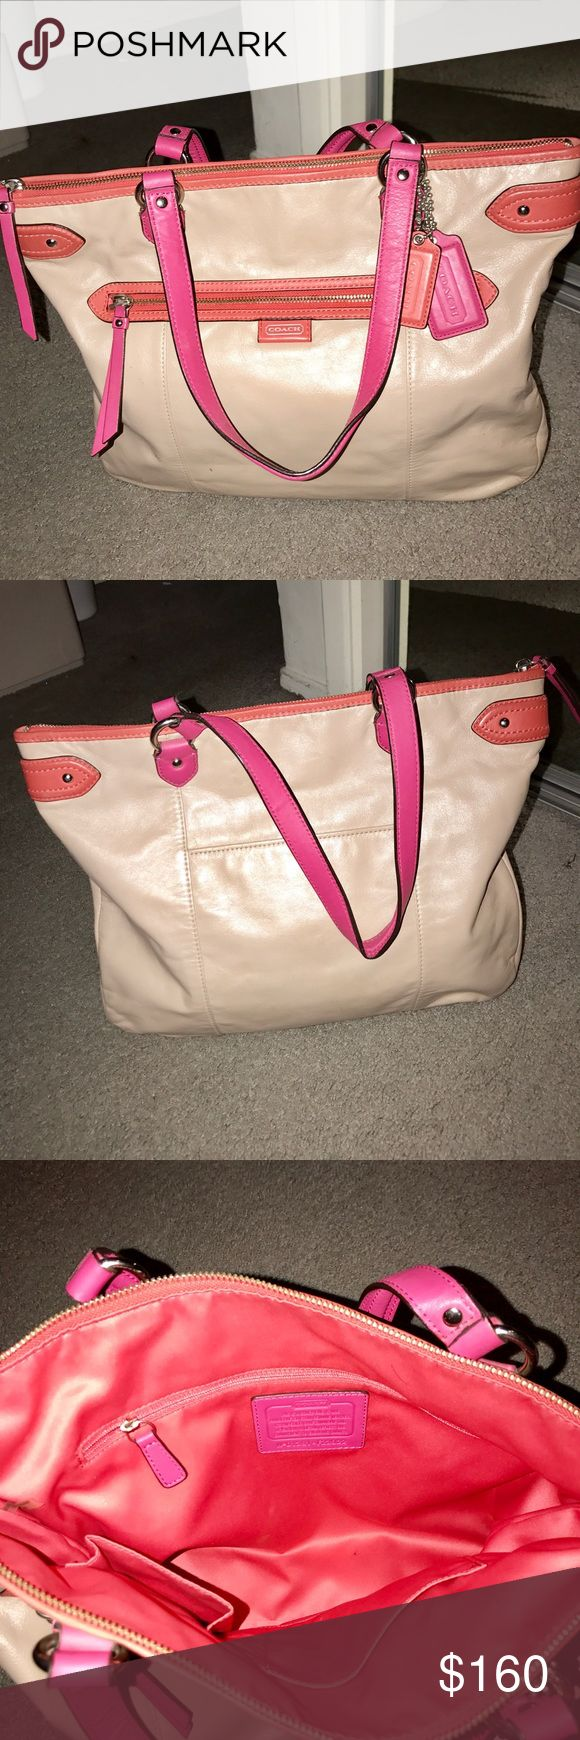 Authentic coach tote bag Like new used one time no damage no stain gray/tan and pink orange color Coach Bags Totes